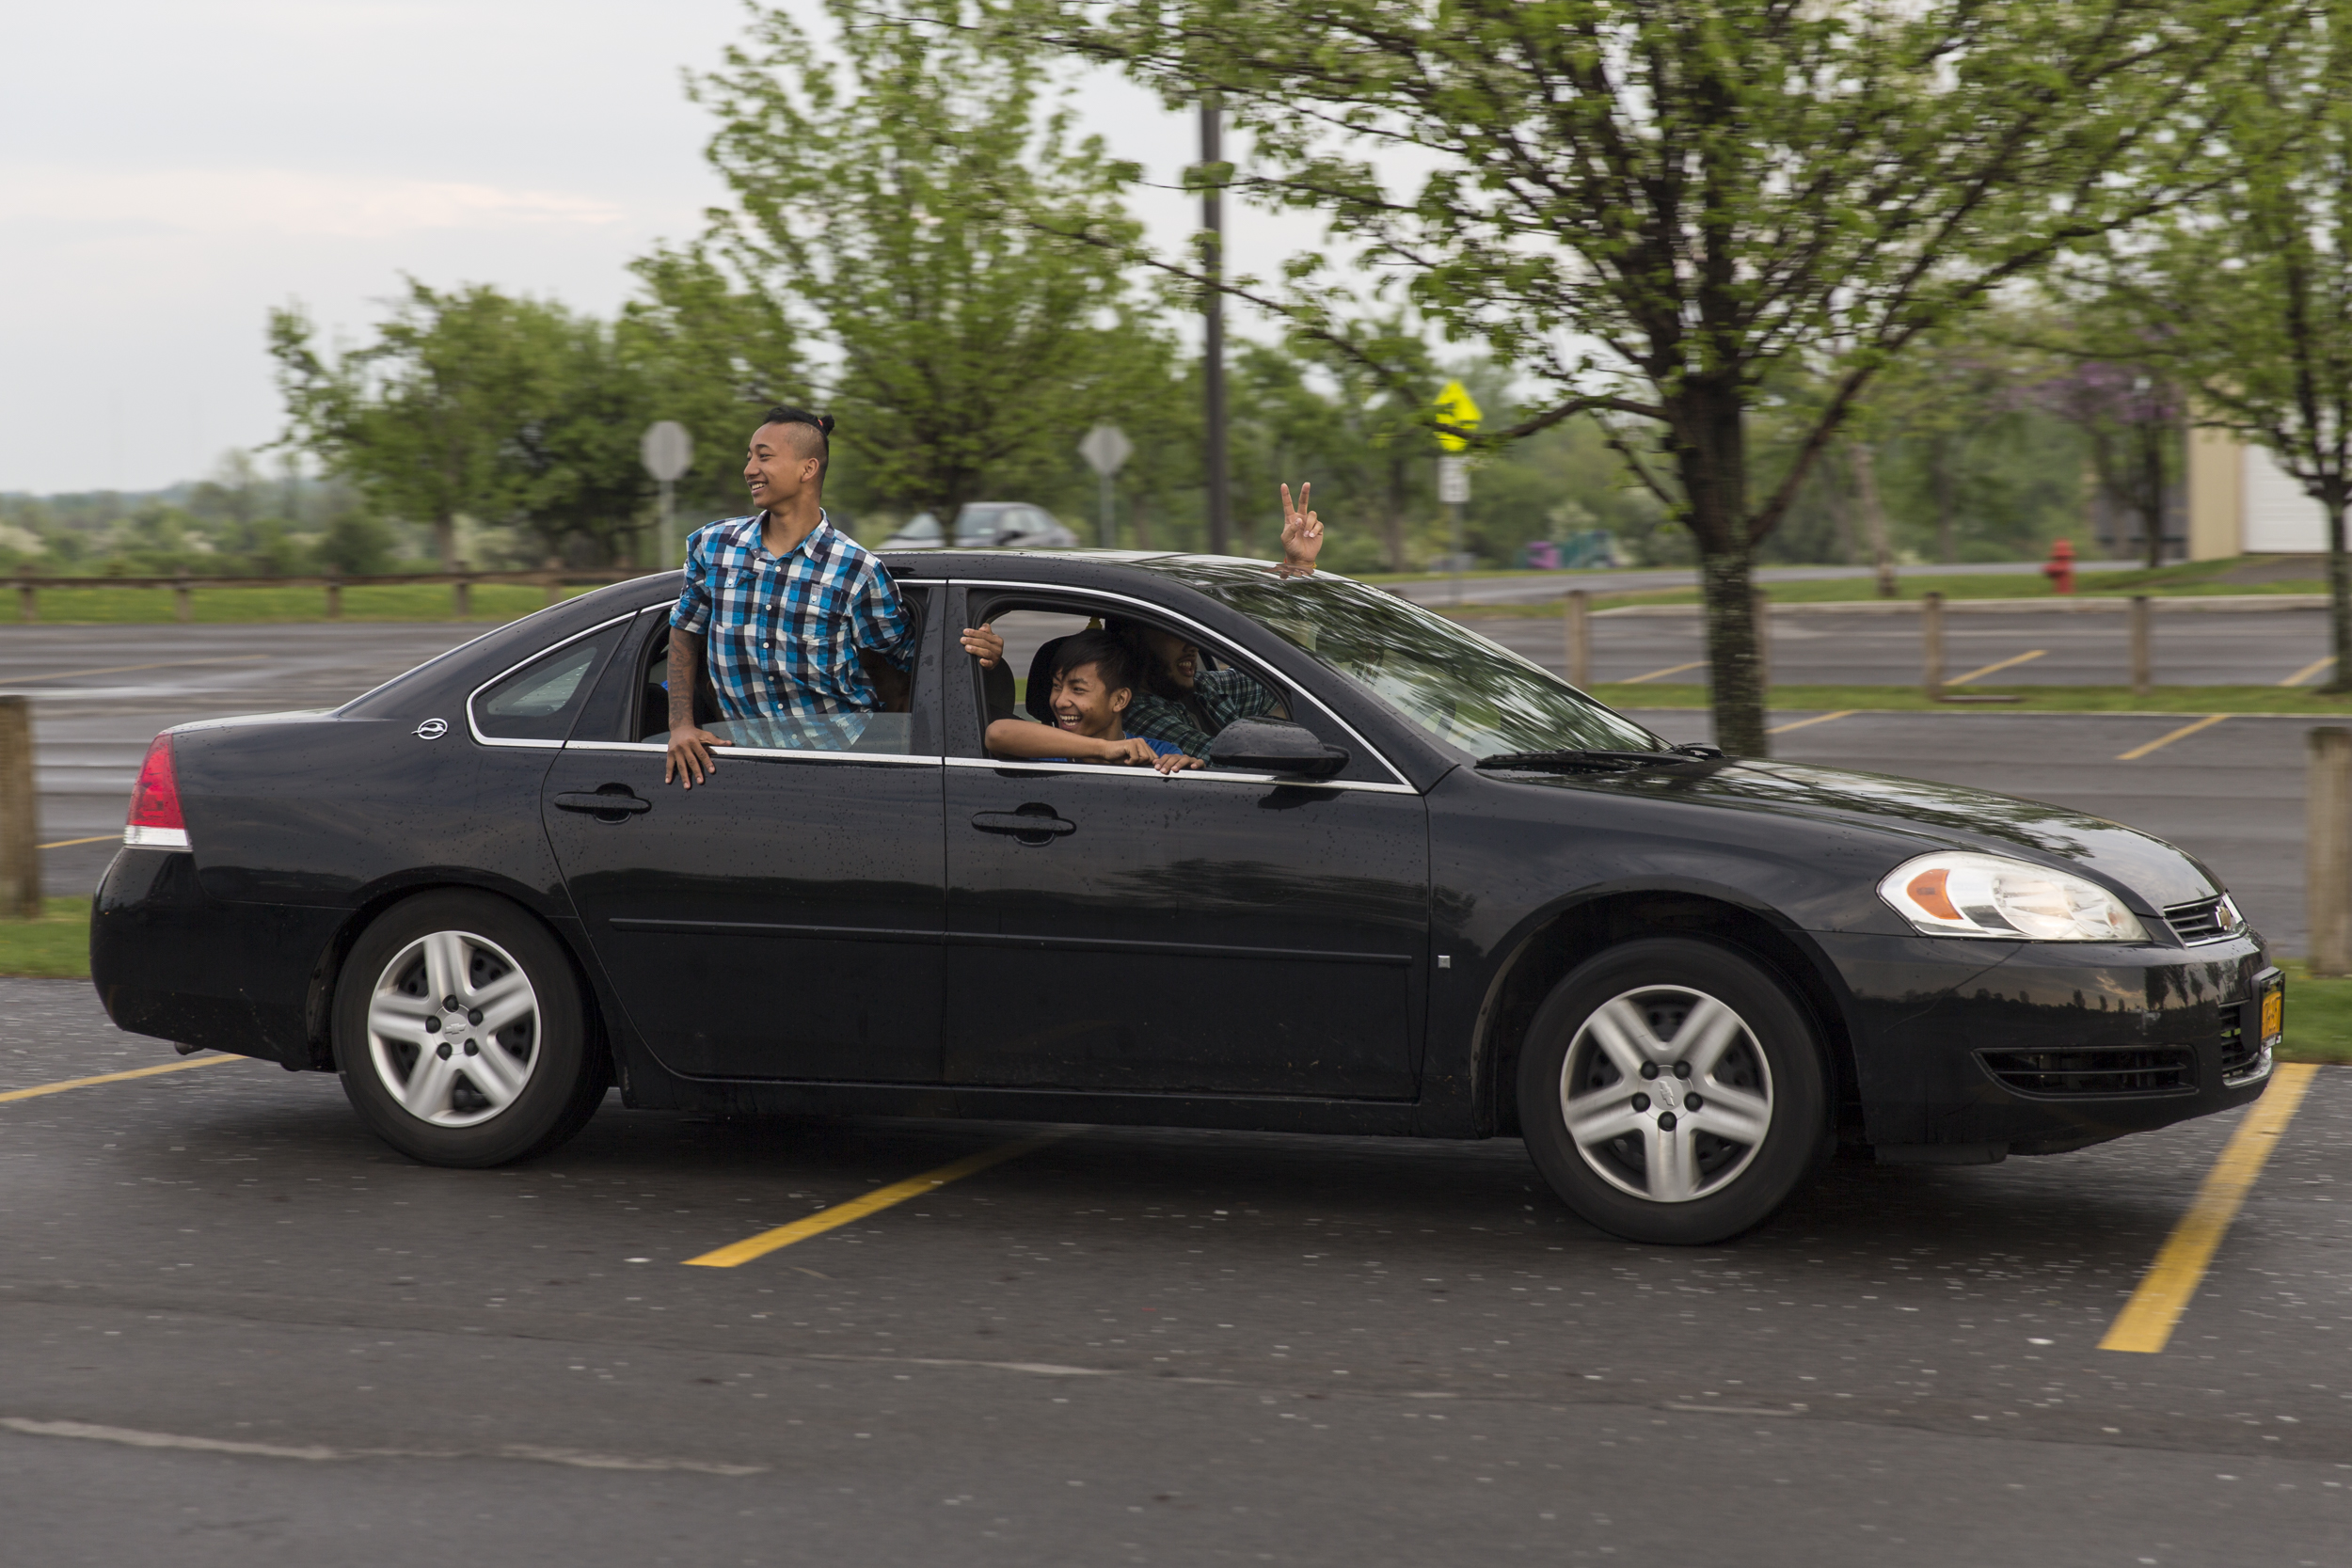 (from left) Hsar and Ehlerh look back as they race other players' cars on the way out after practice at Buckland Park in Brighton, N.Y.. Since the boys do not have their licenses or cars, they often rely on Josh or others to give them a ride to practice. May 10, 2015.